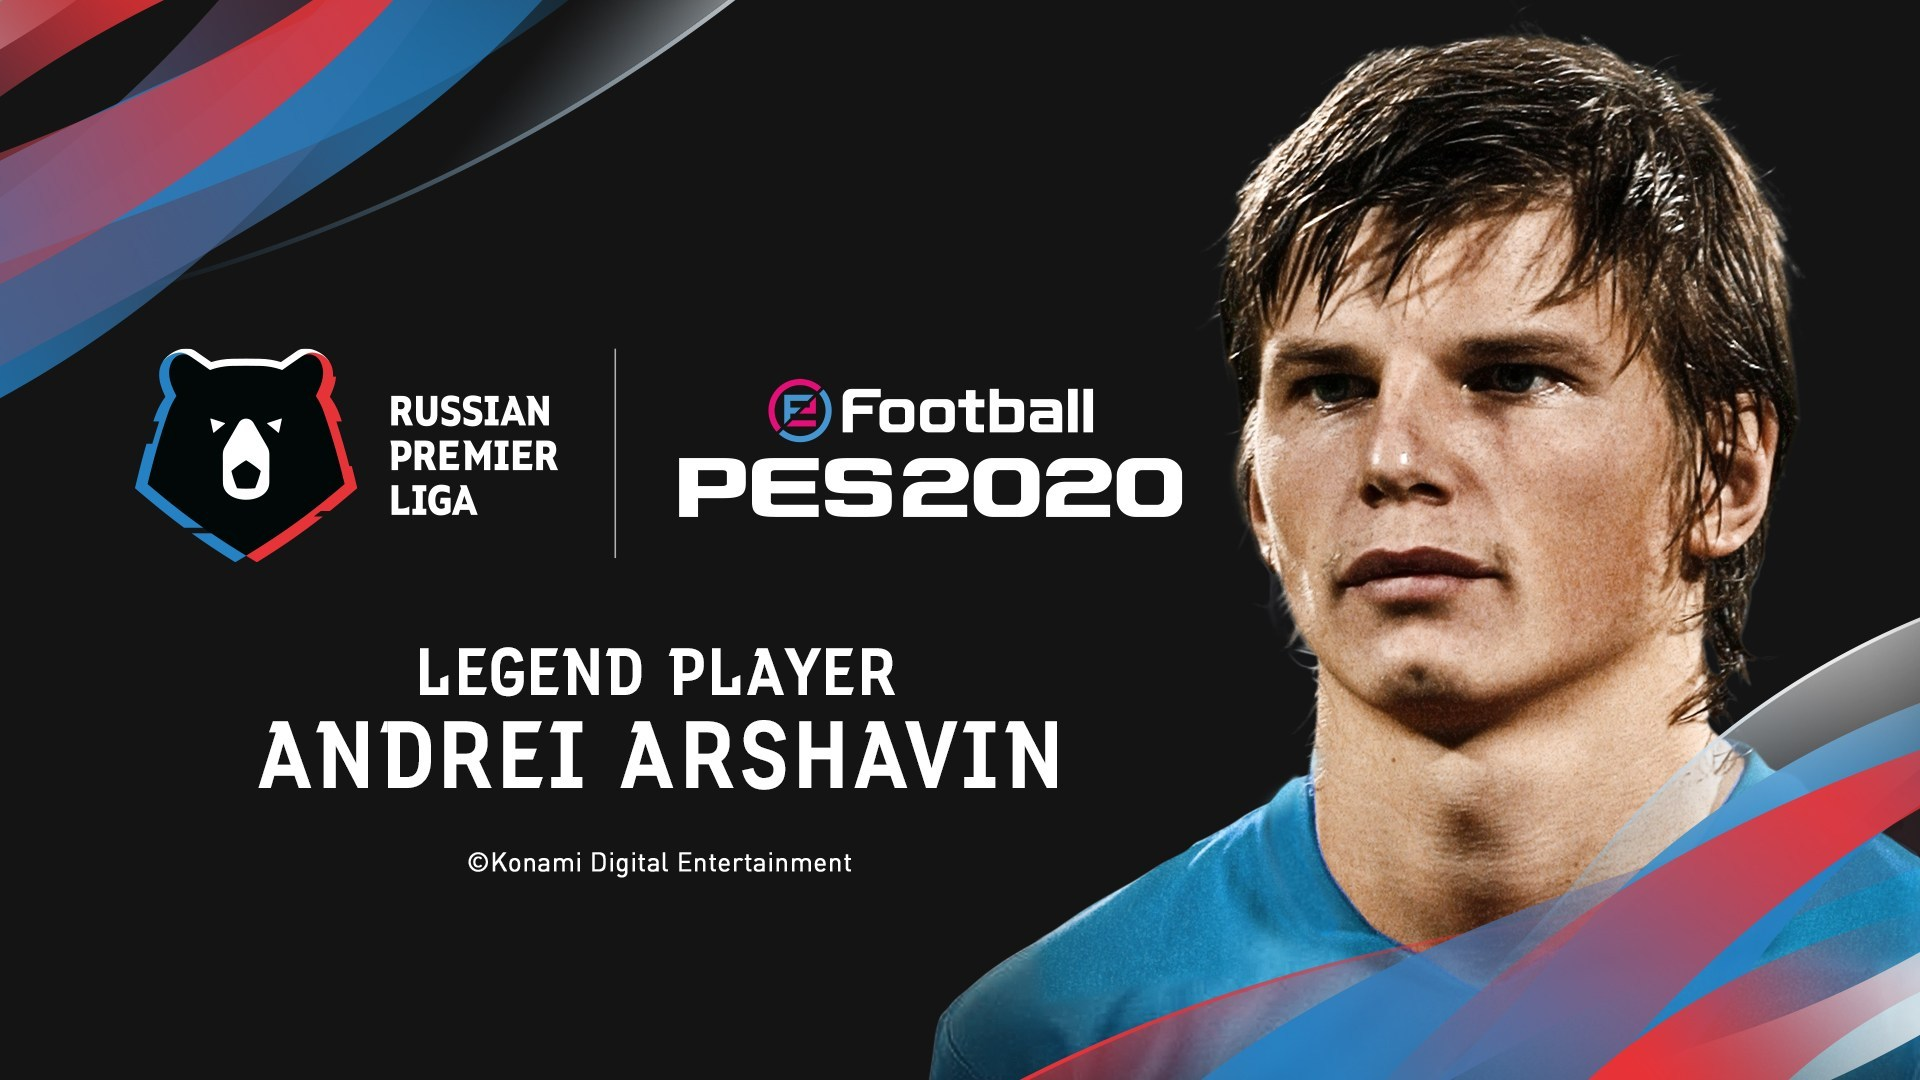 Konami Reveals That Andrey Arshavin Will Feature In The eFootball PES 2020 Roster Of Legends